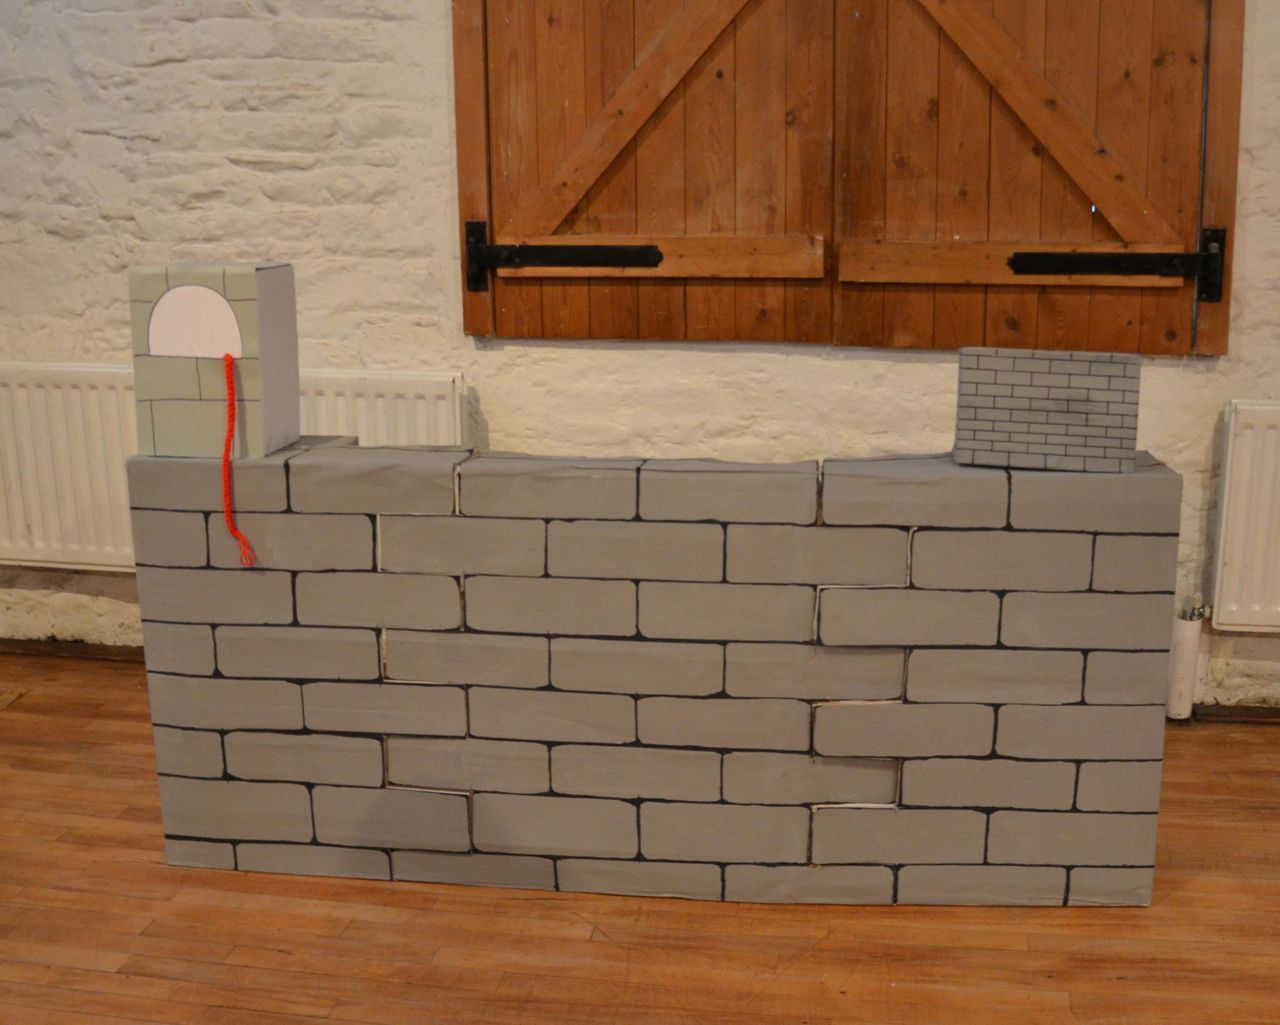 joshua and the walls of jericho craft google search joshua and